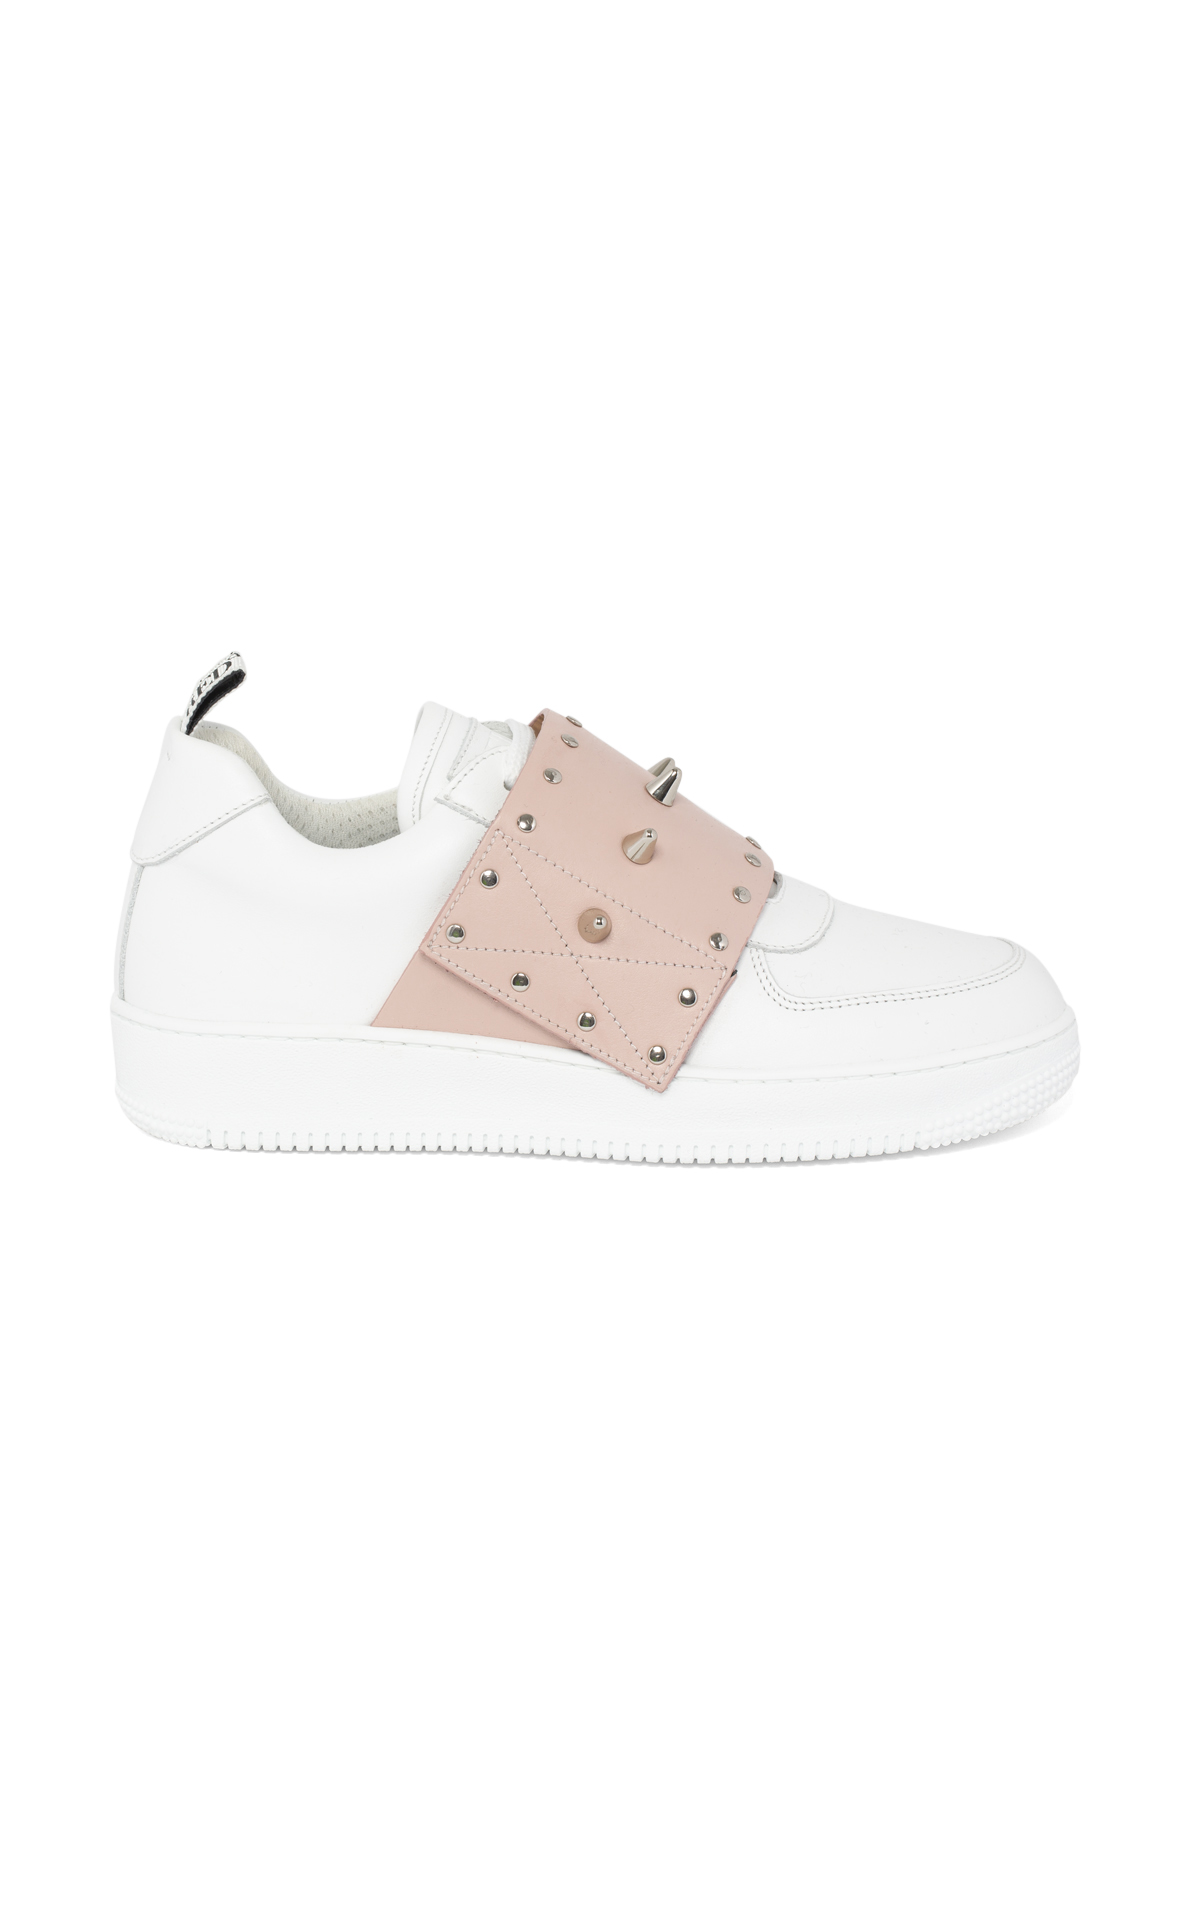 RedValentino Iconic sneakers